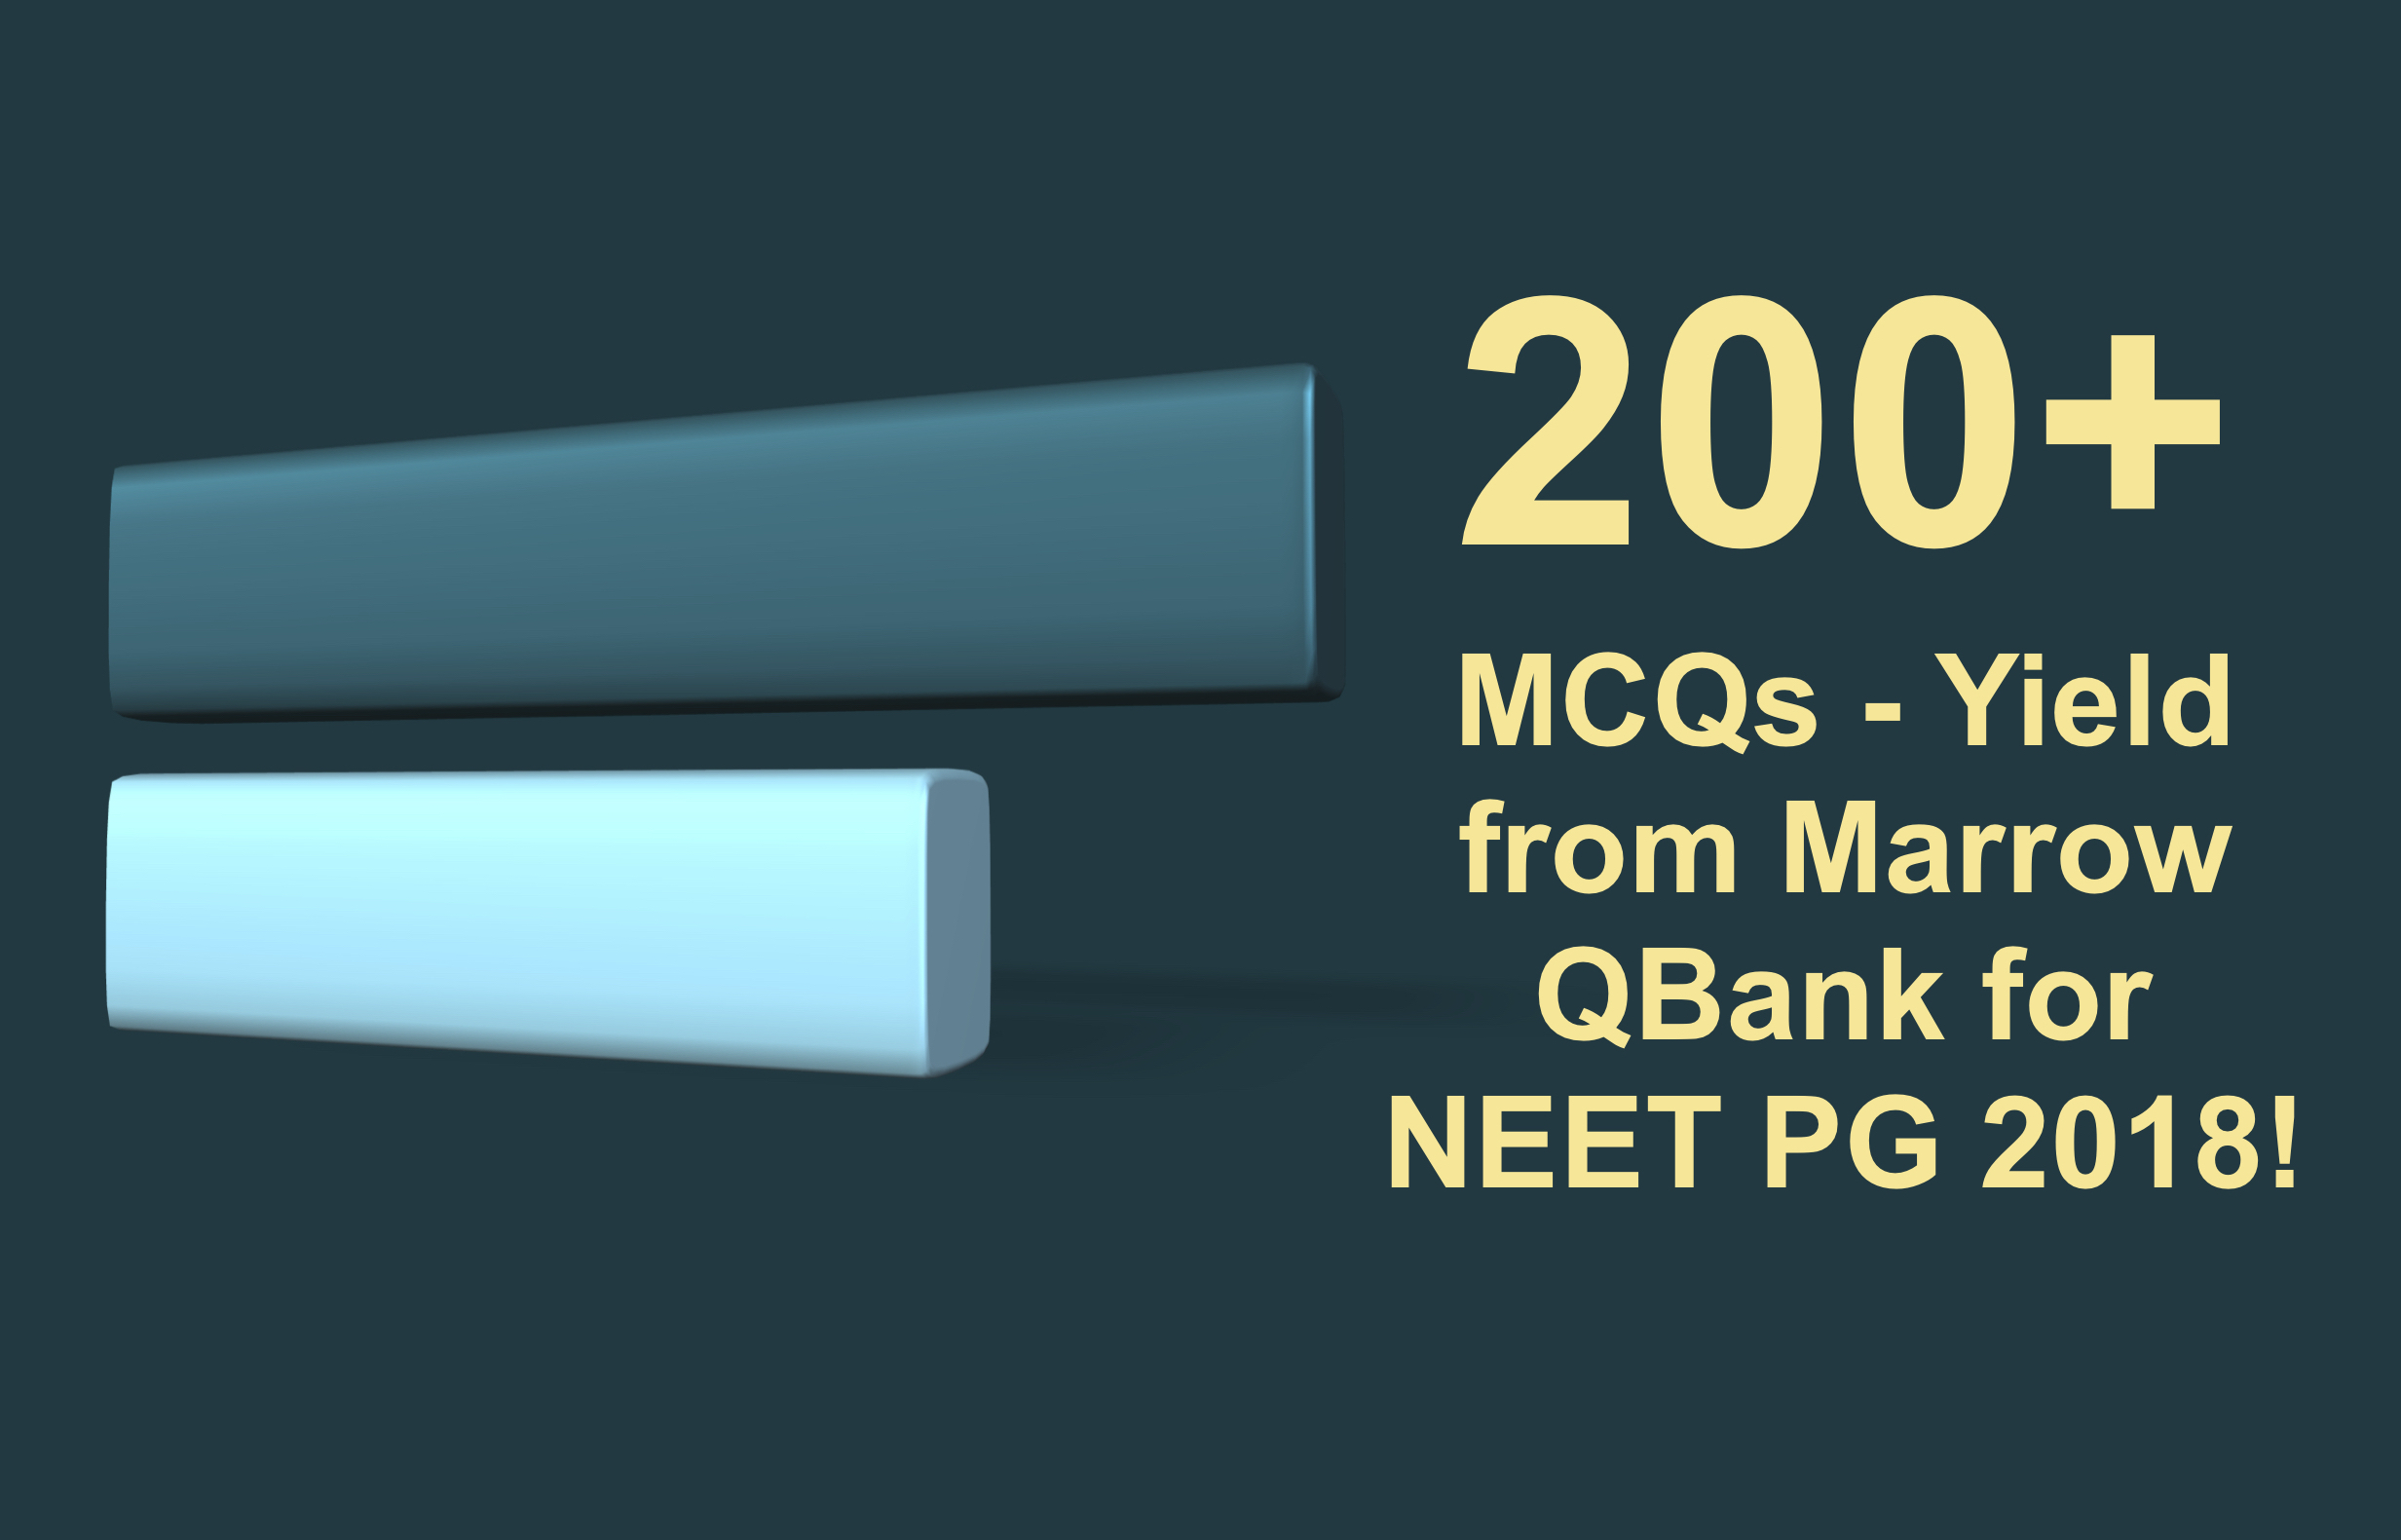 Marrow achieves a yield of 200+ questions in NEET PG 2018 - Marrow